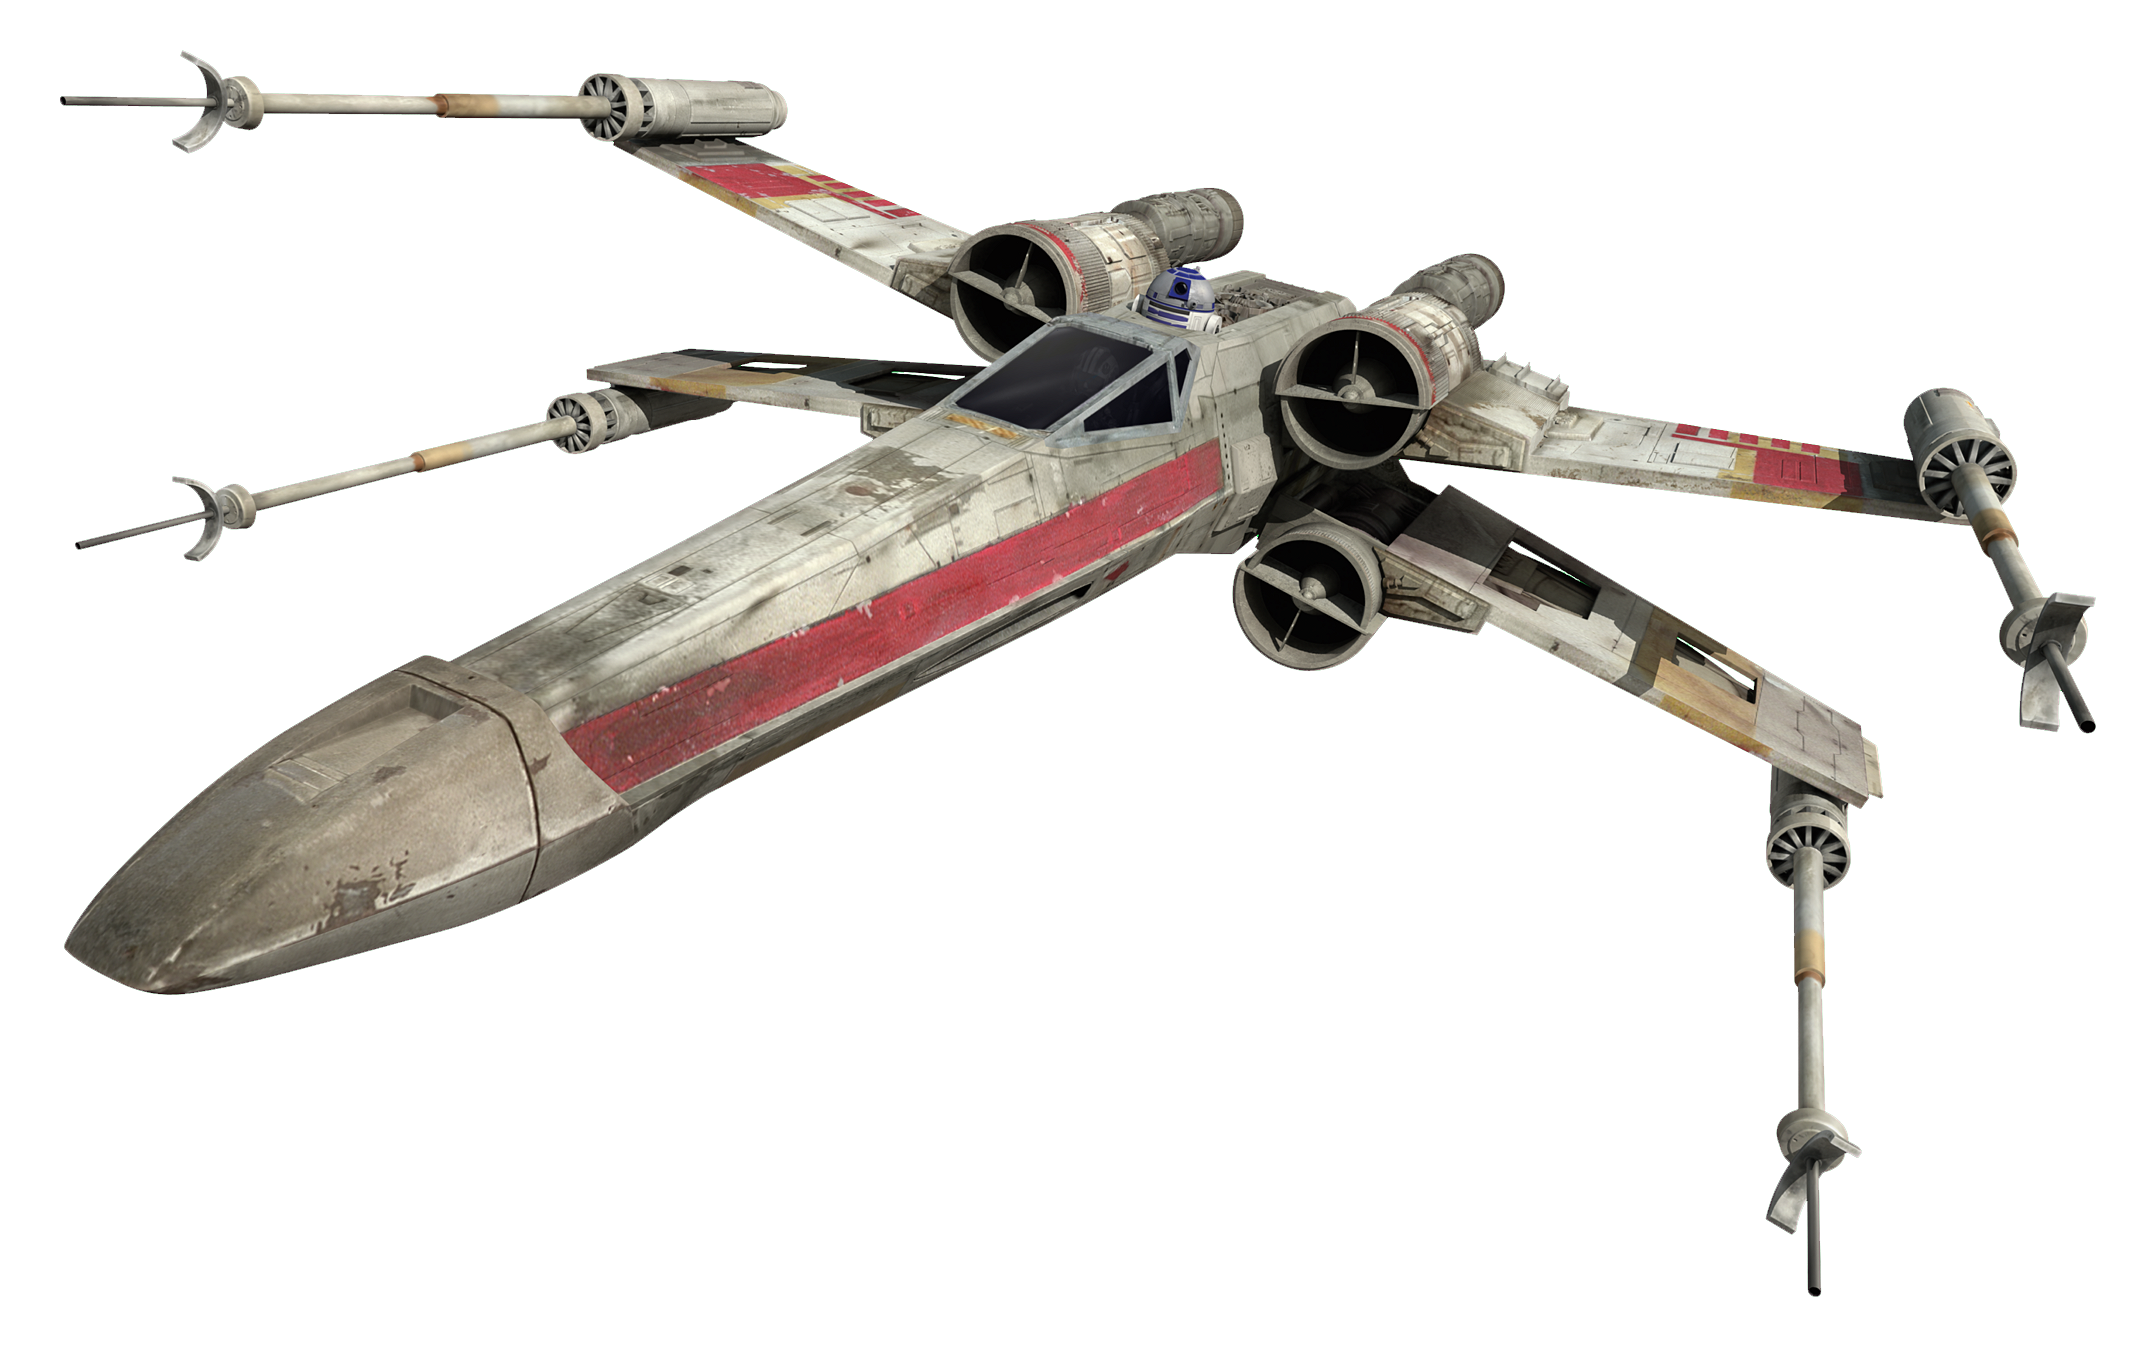 T x wing starfighter. Spaceship clipart space fighter